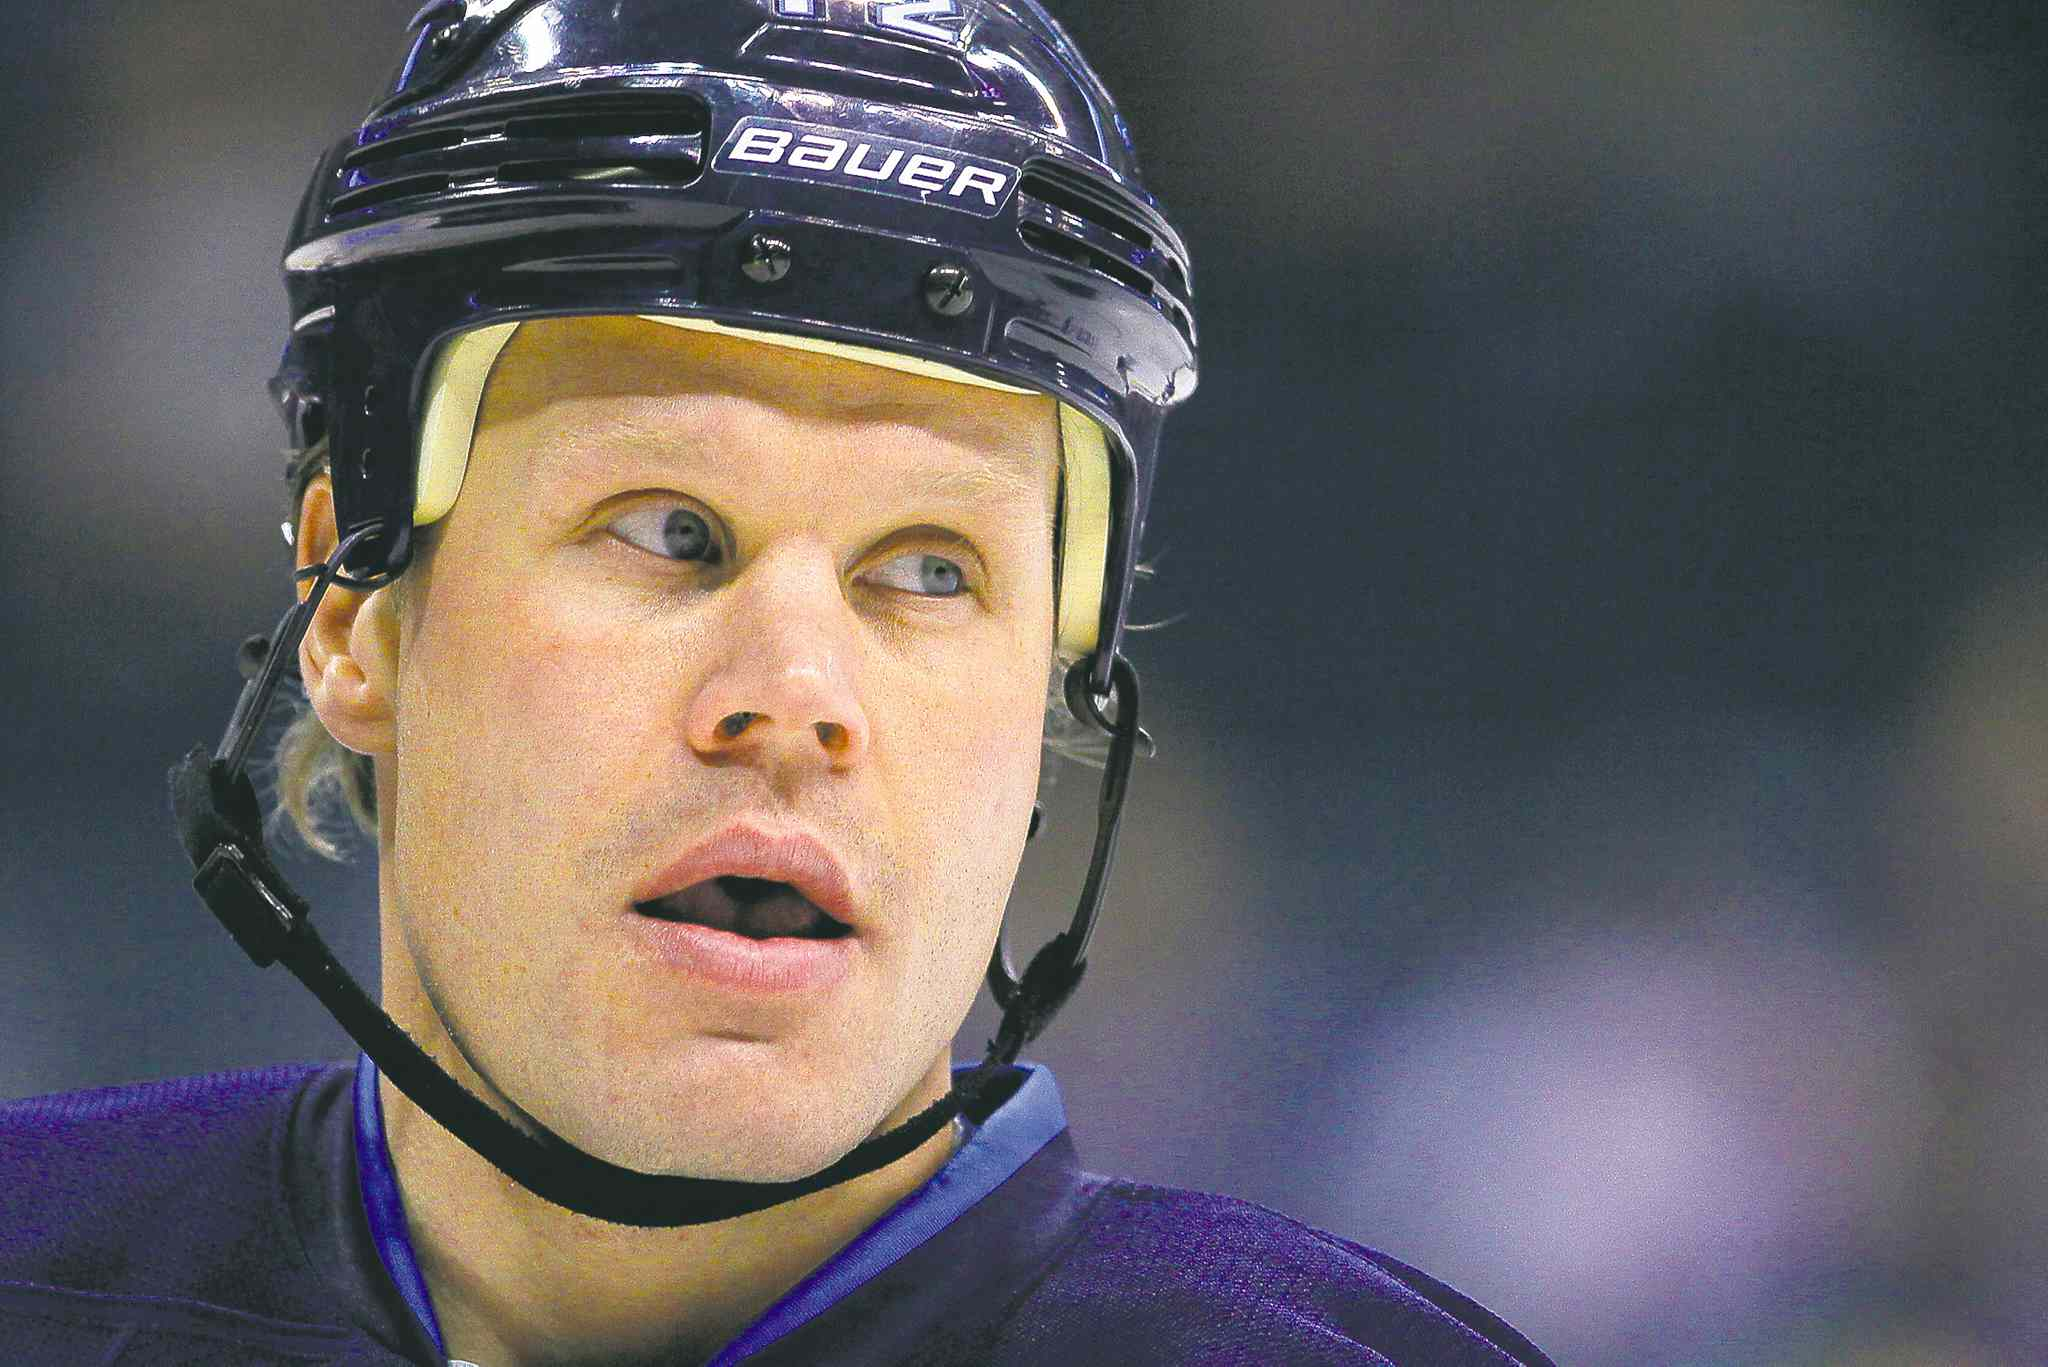 Winnipeg Jets centre Olli Jokinen, 35, will become an unrestricted free agent this summer. He's racked up 33 points in 62 games this season, but could be on the block.